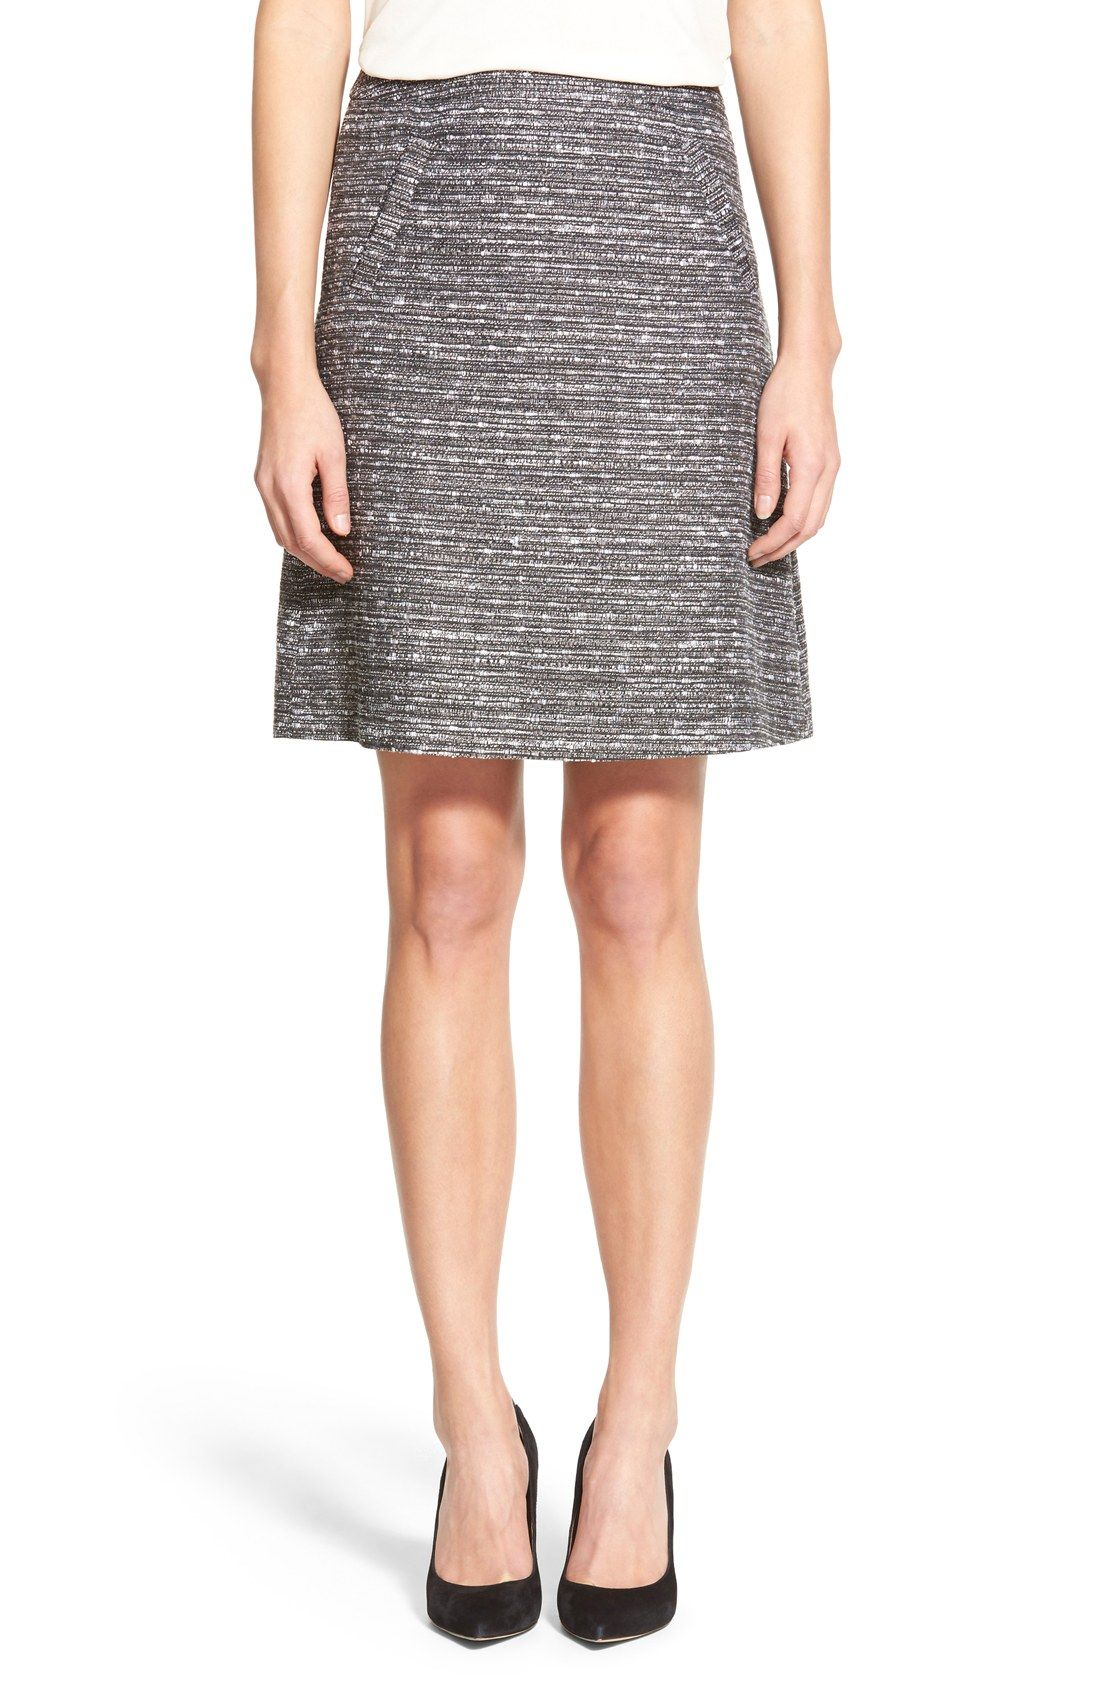 a46b8322eb Halogen® Welt Pocket A-Line Skirt (Regular & Petite) from Nordstrom - a  great textured skirt to wear with your white and black structured tops for  work.